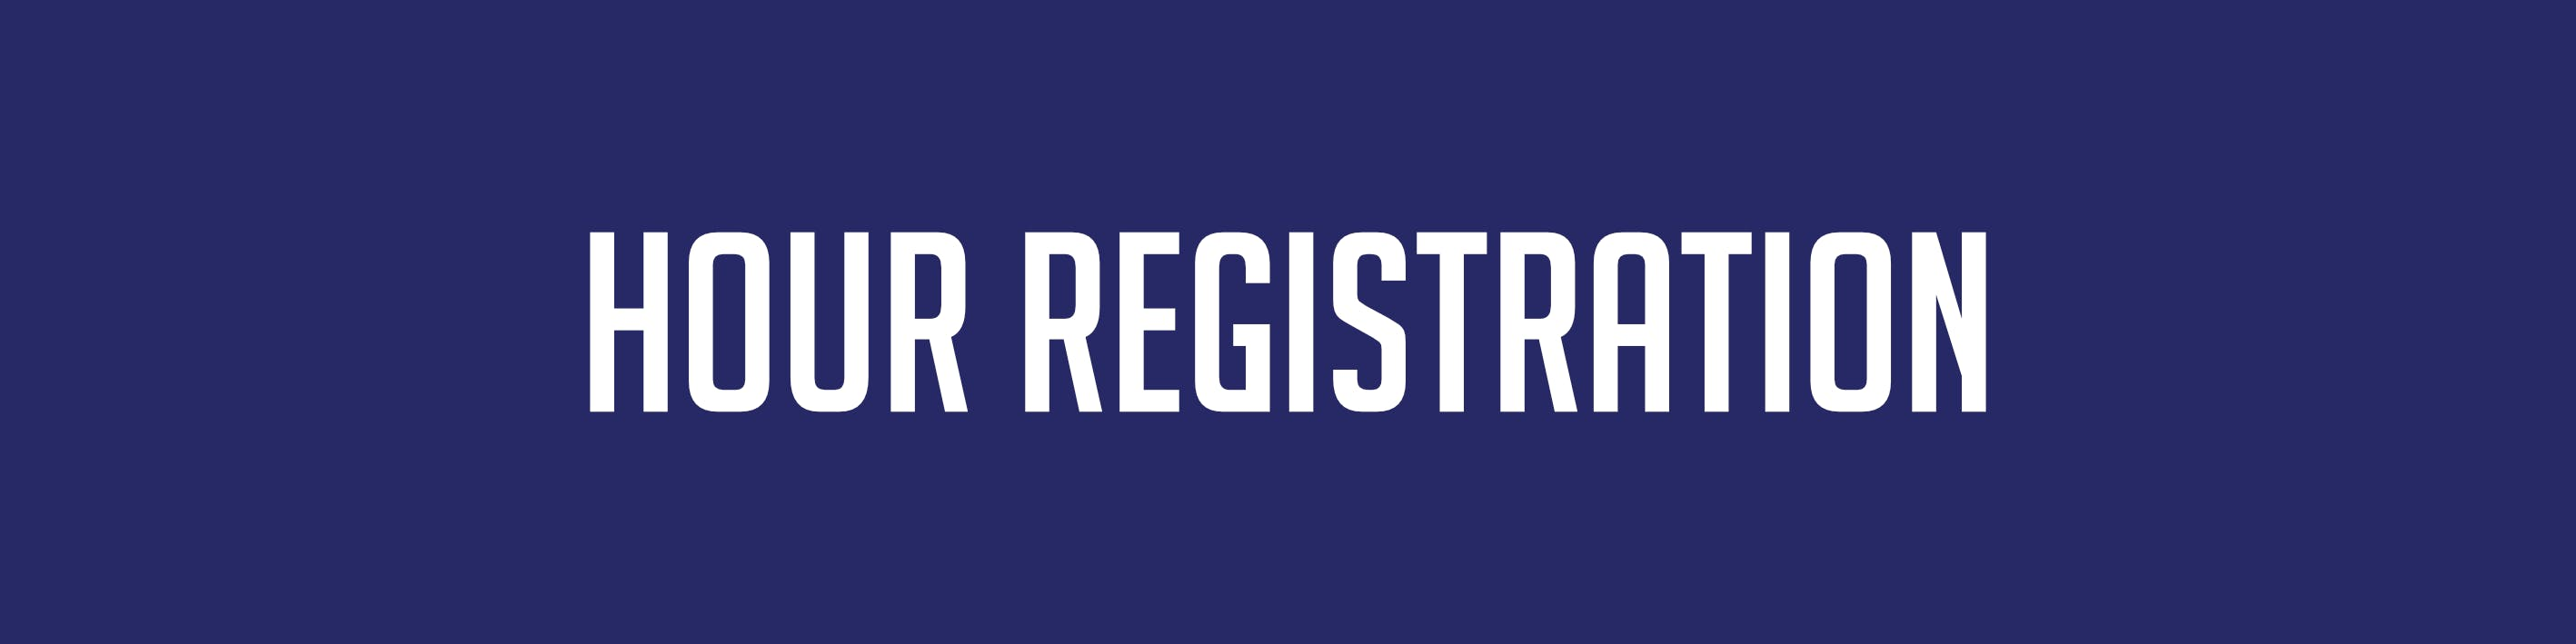 Hour Registration